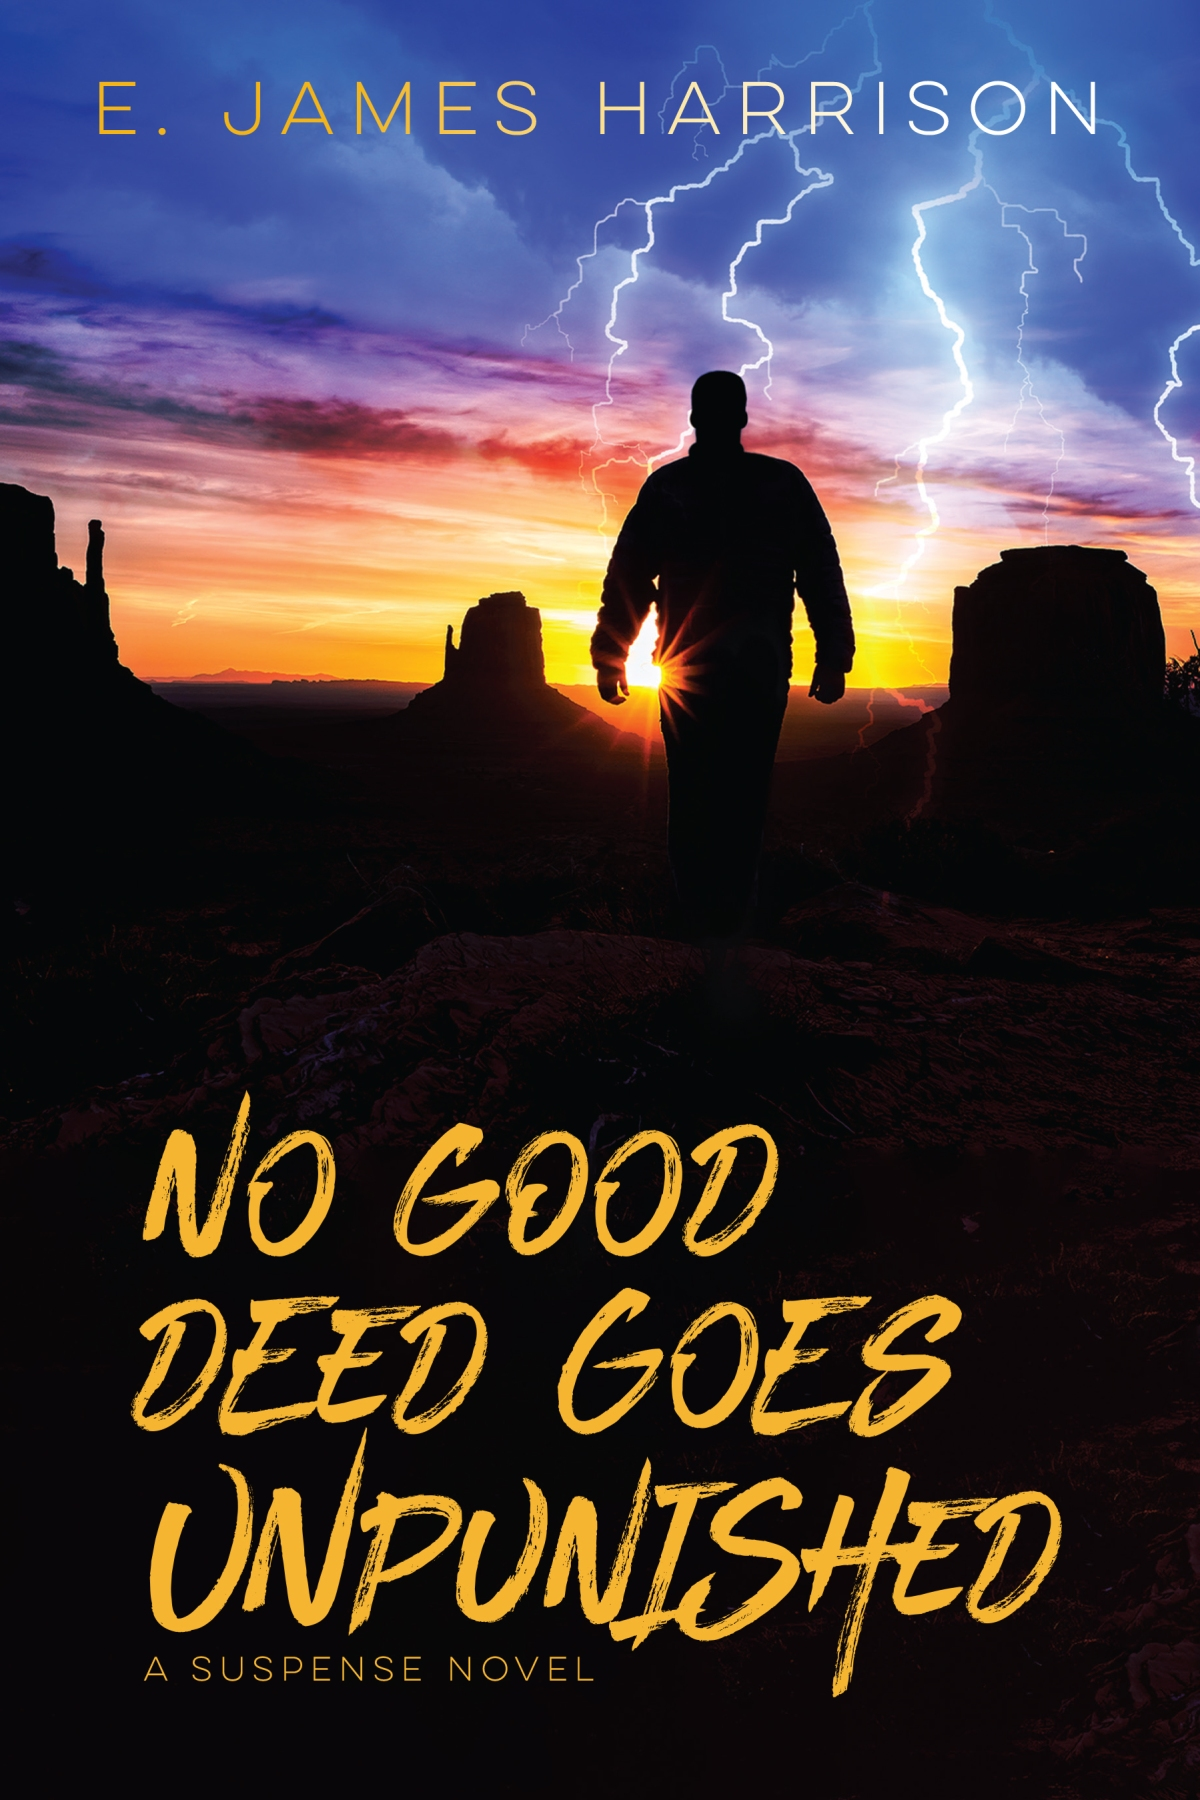 Book Blast: NO GOOD DEED GOES UNPUNISHED by E. James Harrison